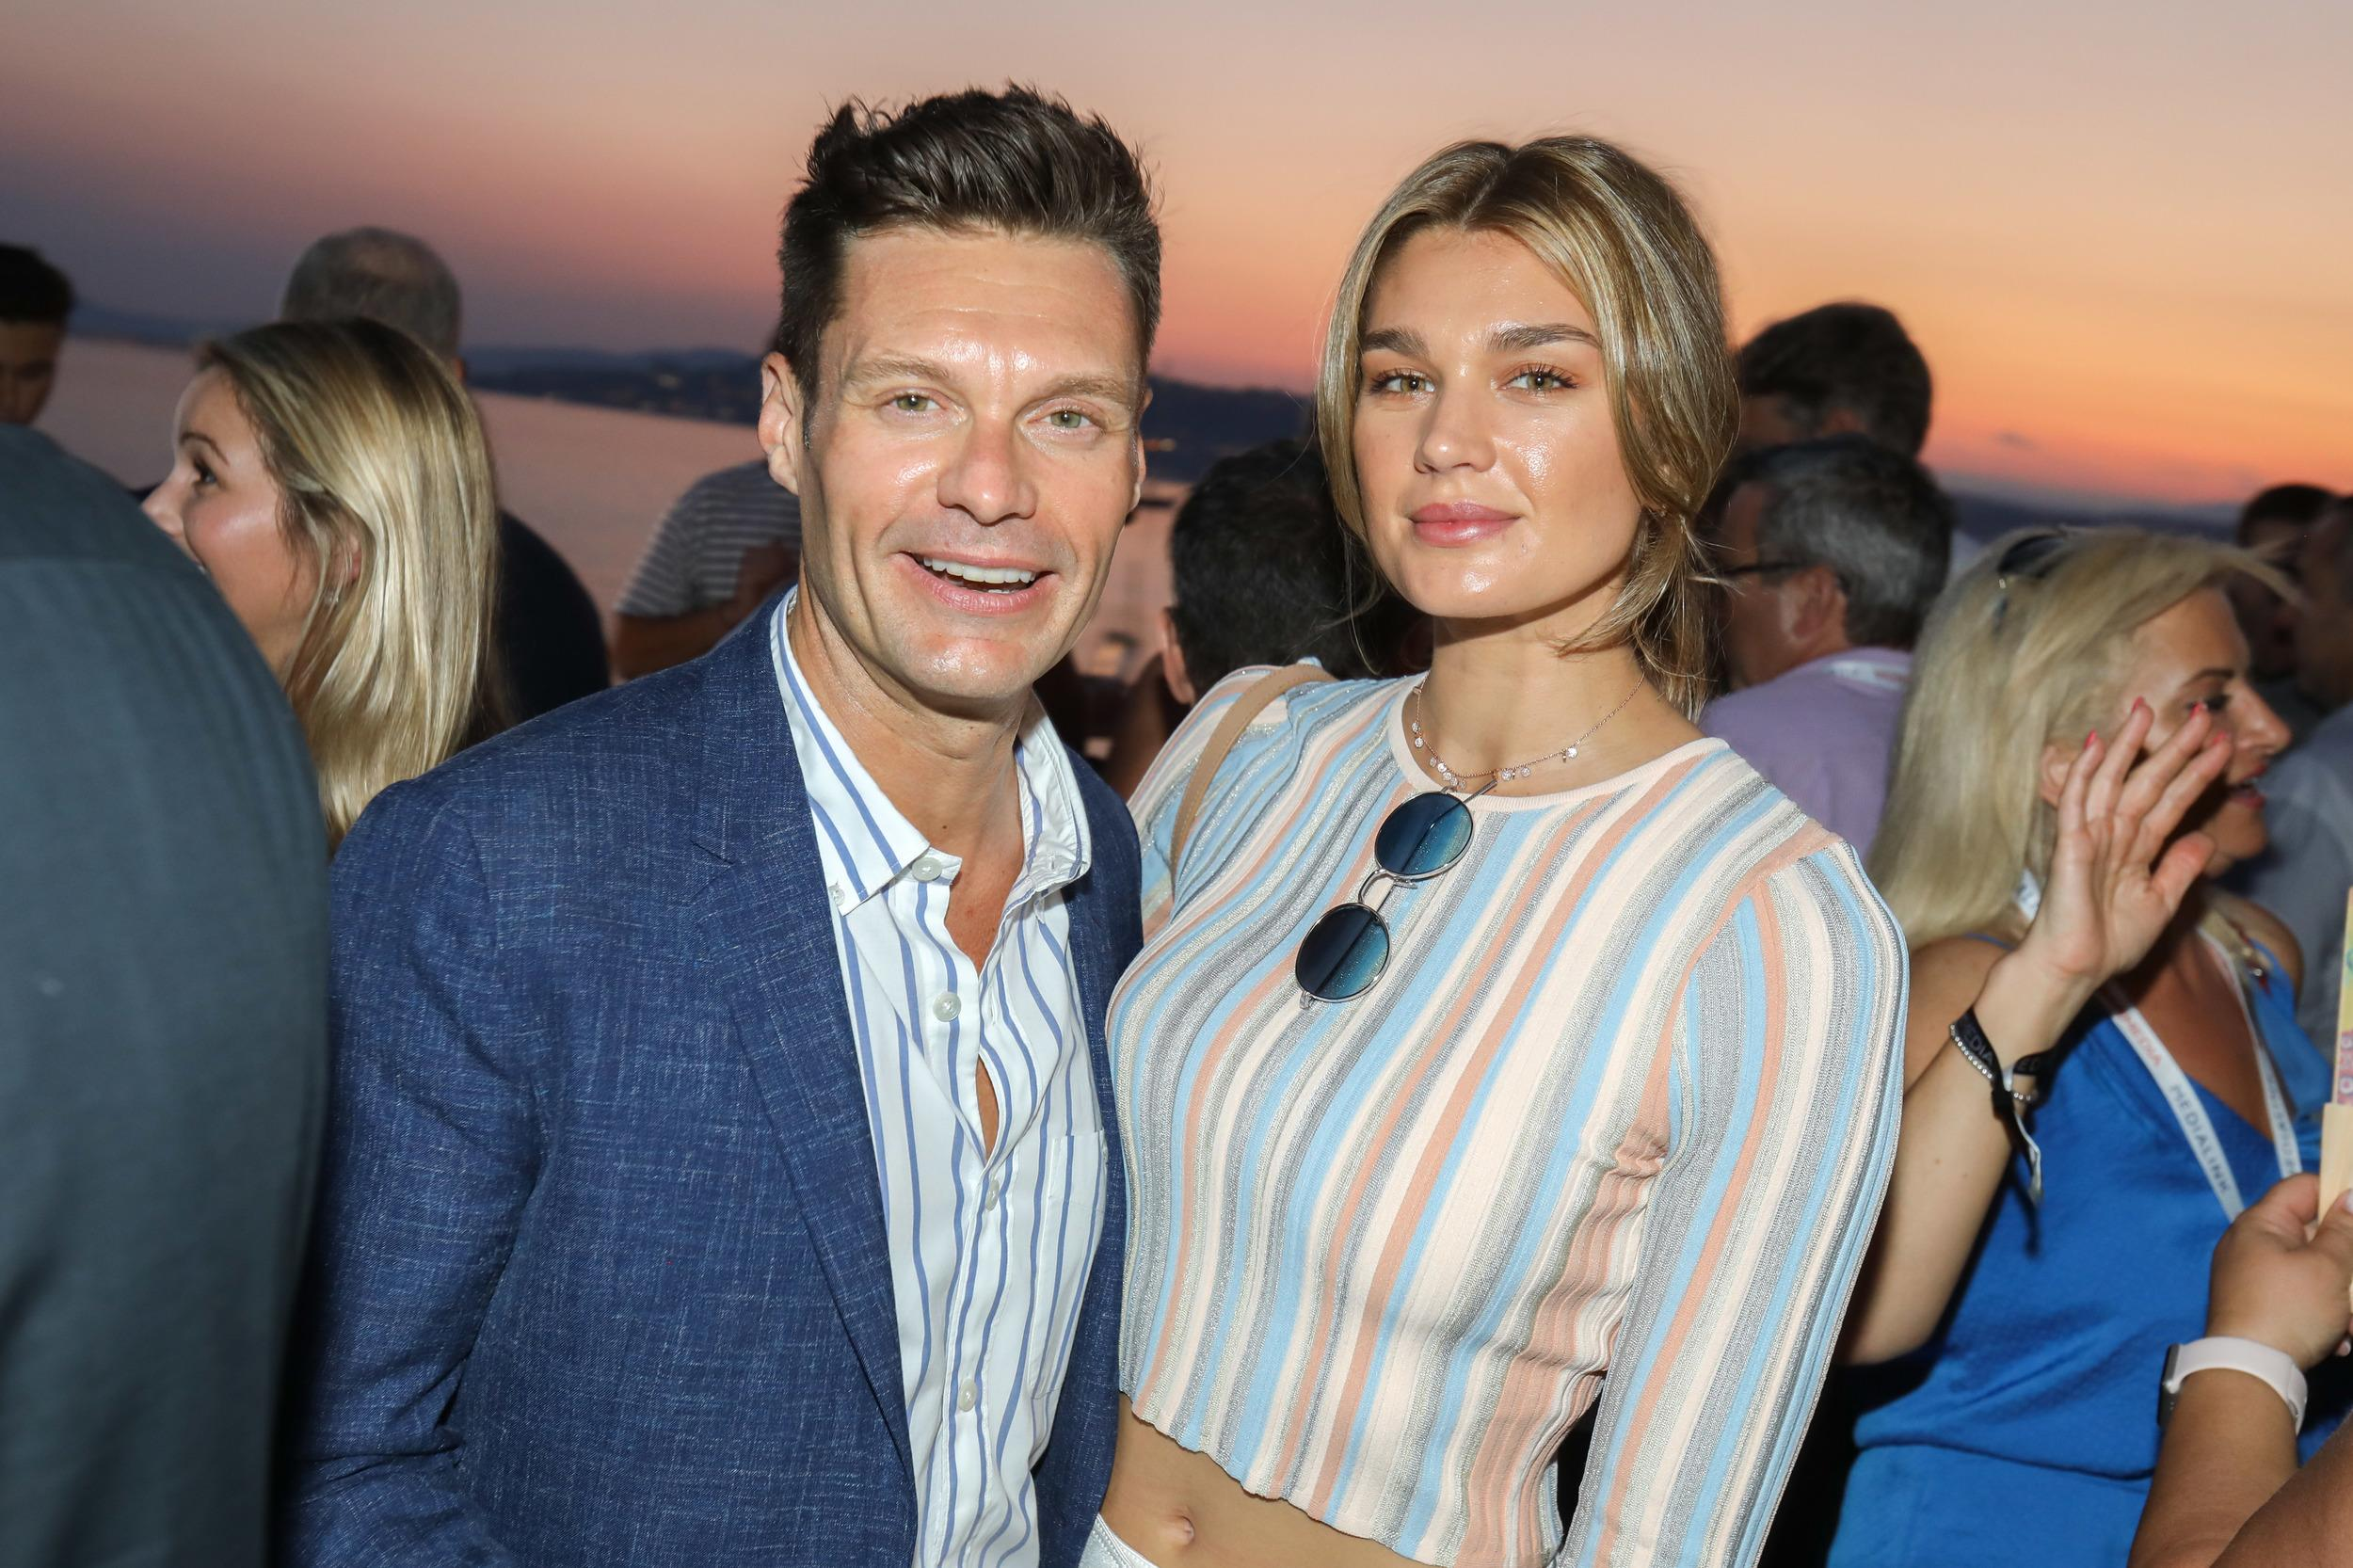 CAP D'ANTIBES, FRANCE - JUNE 19: Ryan Seacrest and Shayna Taylor attend a VIP dinner party hosted by iHeartMedia and MediaLink during the Cannes Lions Festival of Creativity at Hotel du Cap-Eden-Roc on June 19, 2018 in Cap d'Antibes, France. (Photo by Tony Barson/Getty Images for iHeartMedia)